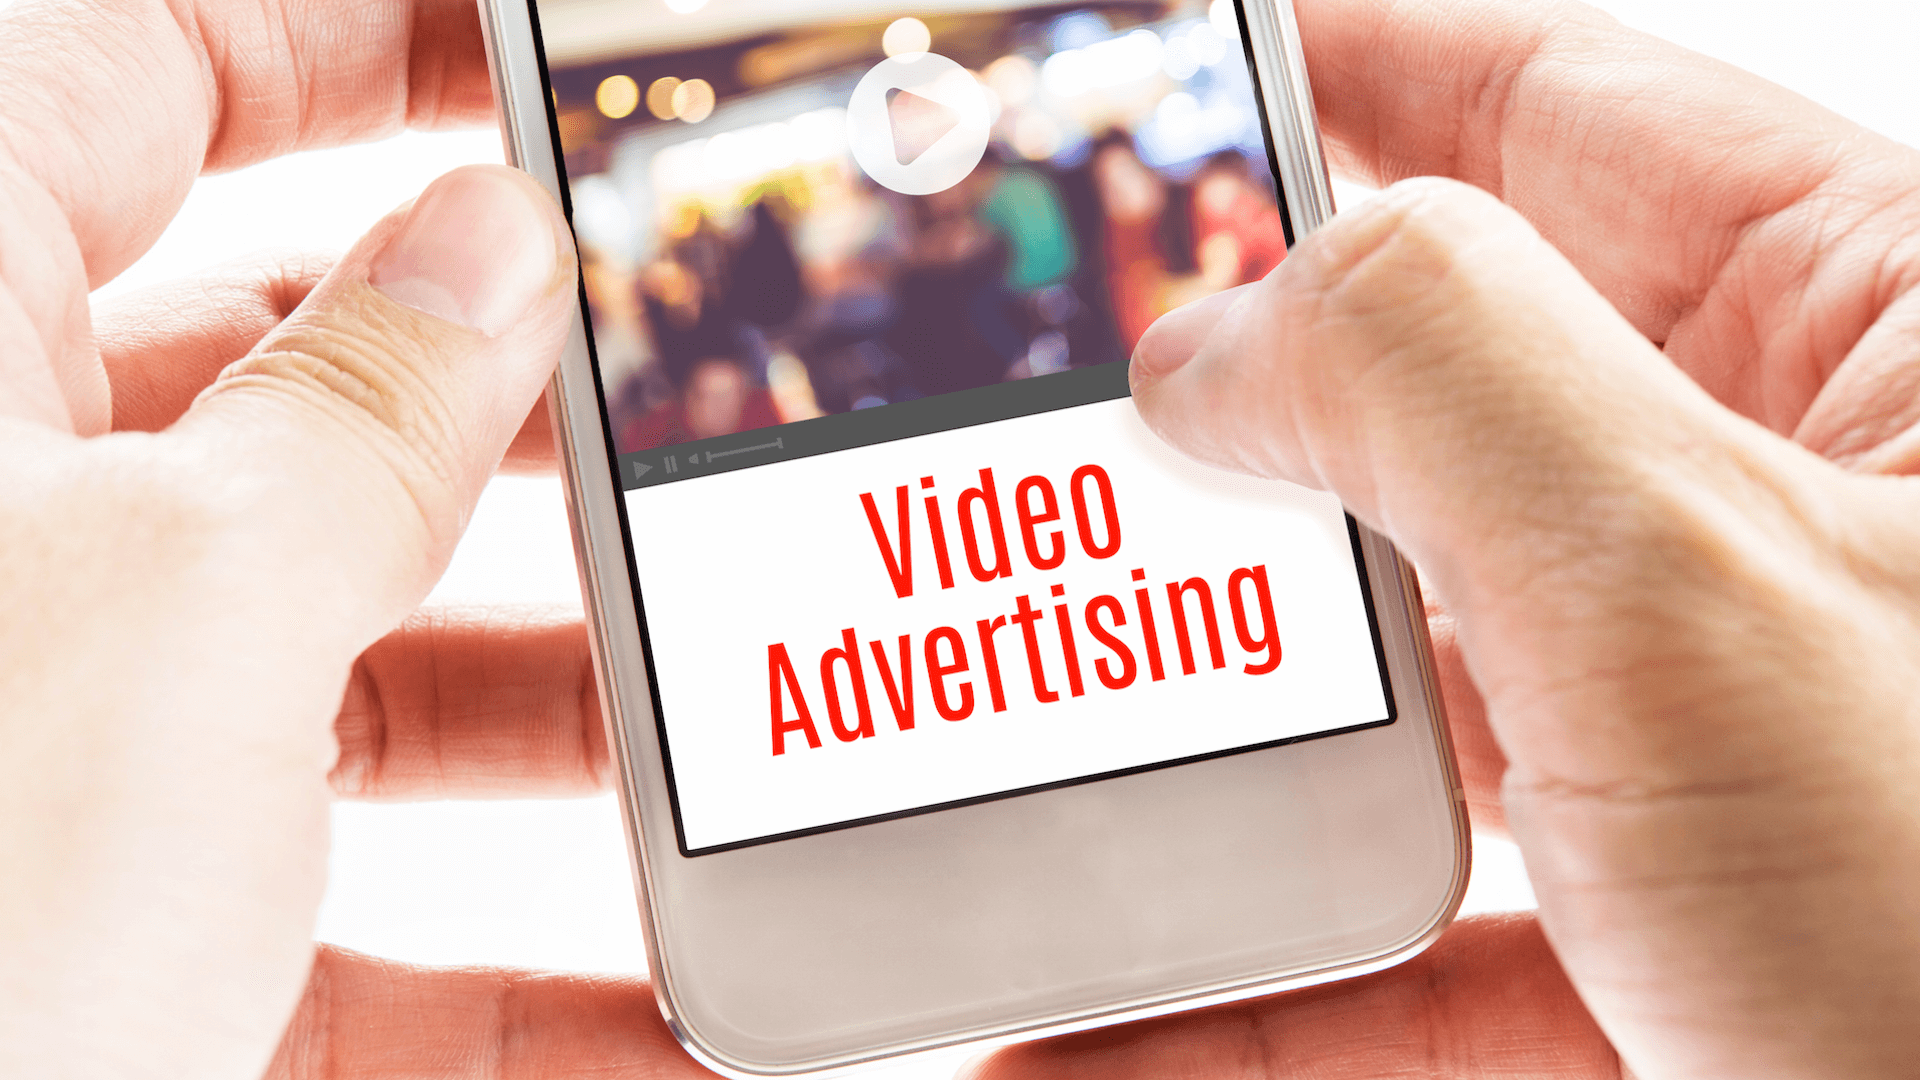 VideoAds1920 - New Opportunities For Your Clients With Video Ads, Vlogs, And Online Conferences